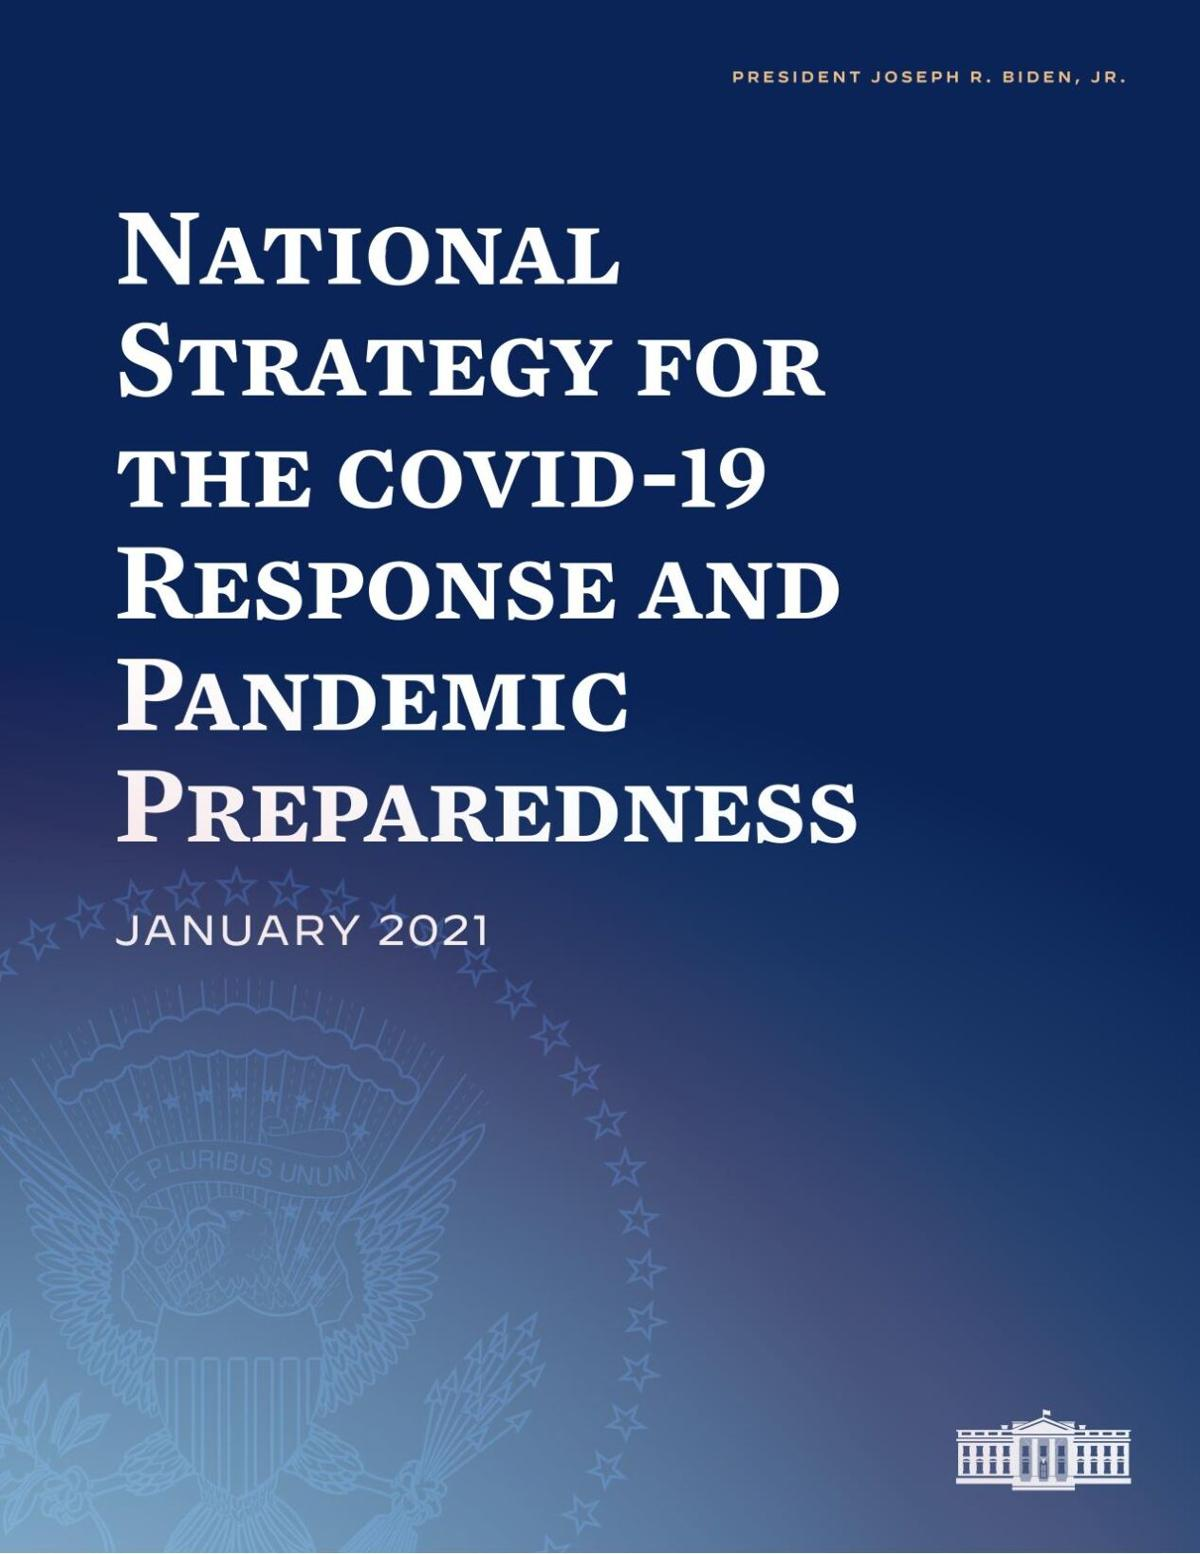 National-Strategy-for-the-COVID-19-Response-and-Pandemic-Preparedness